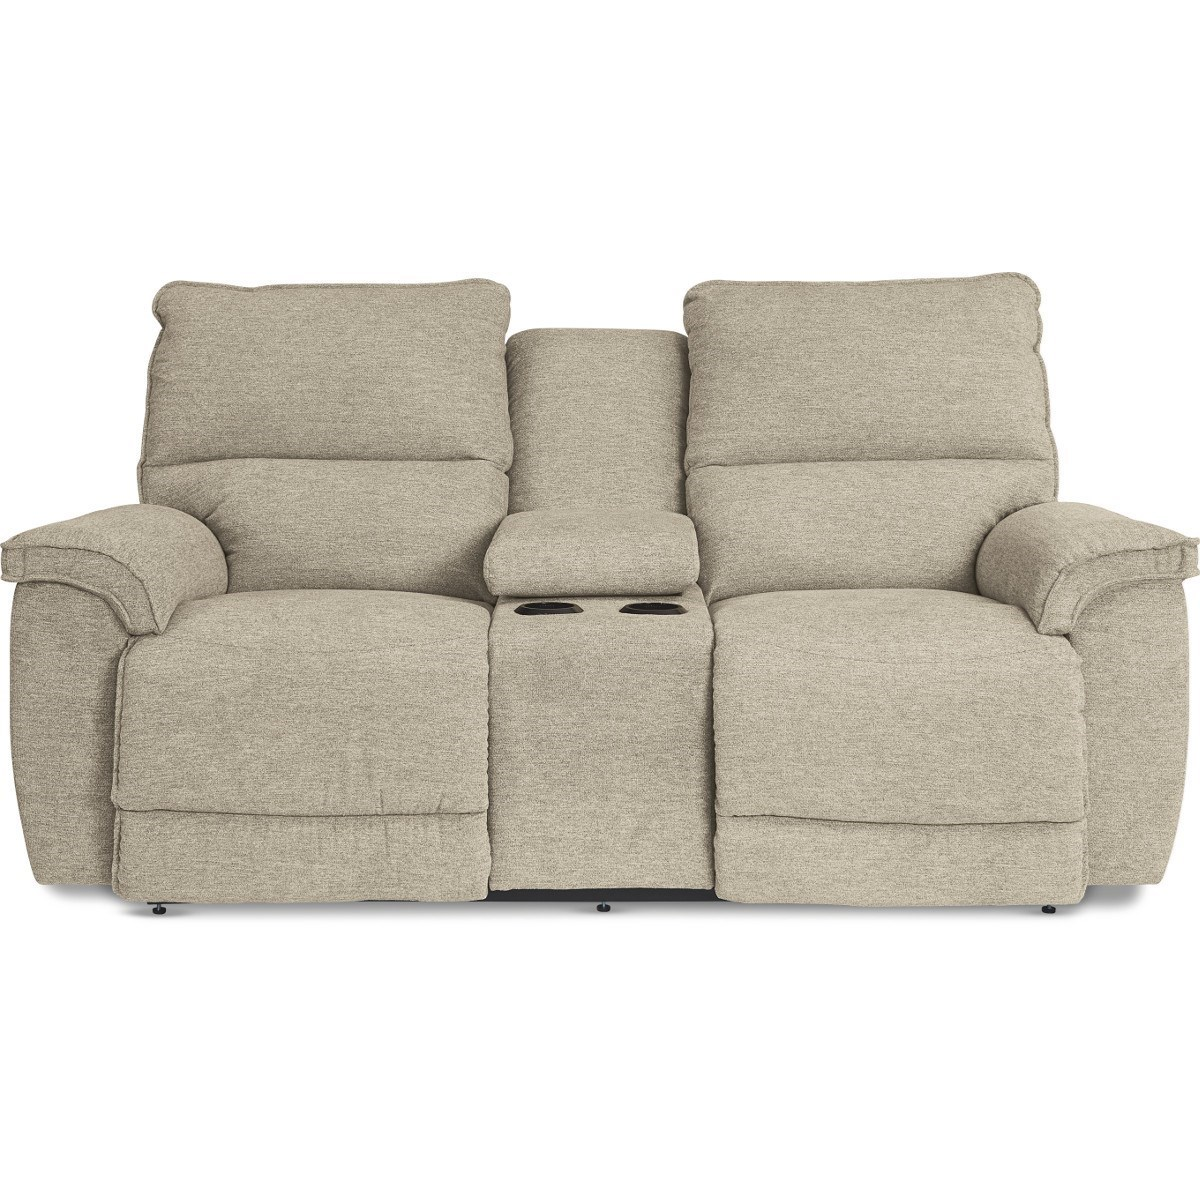 Norris Power Recline Love w/ Console & Pwr Headrest by La-Z-Boy at Home Furnishings Direct